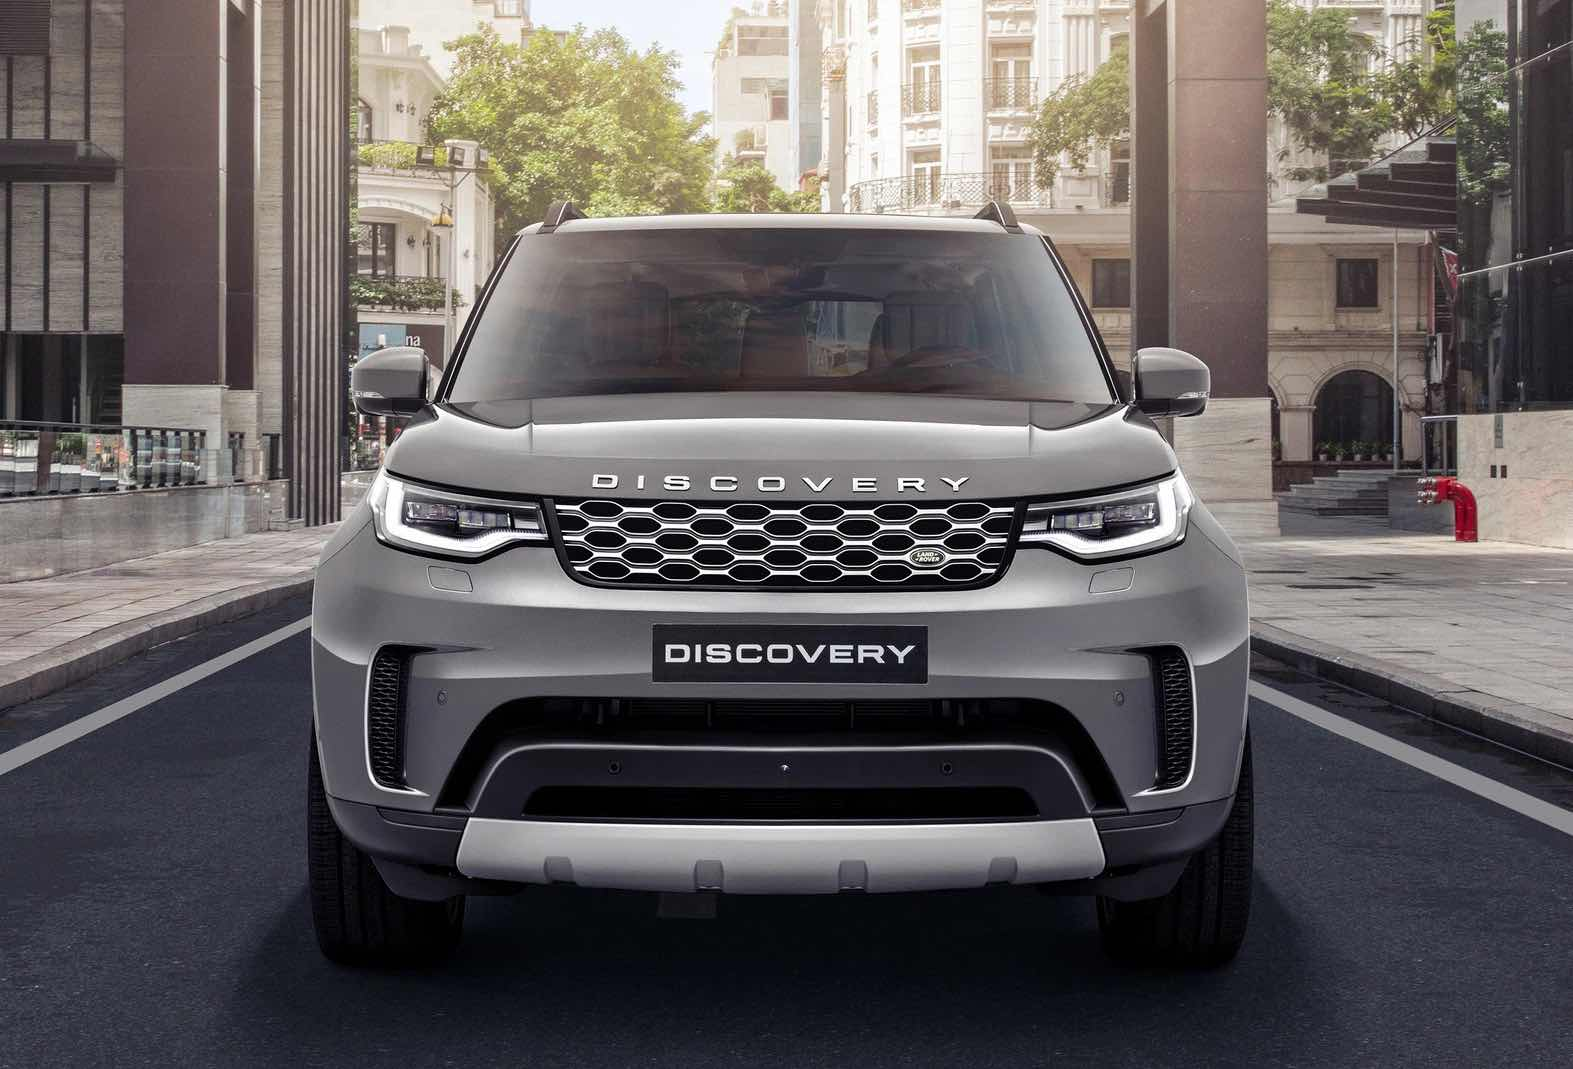 Land-Rover-Discovery-2021-ra-mat-anh-14.jpg